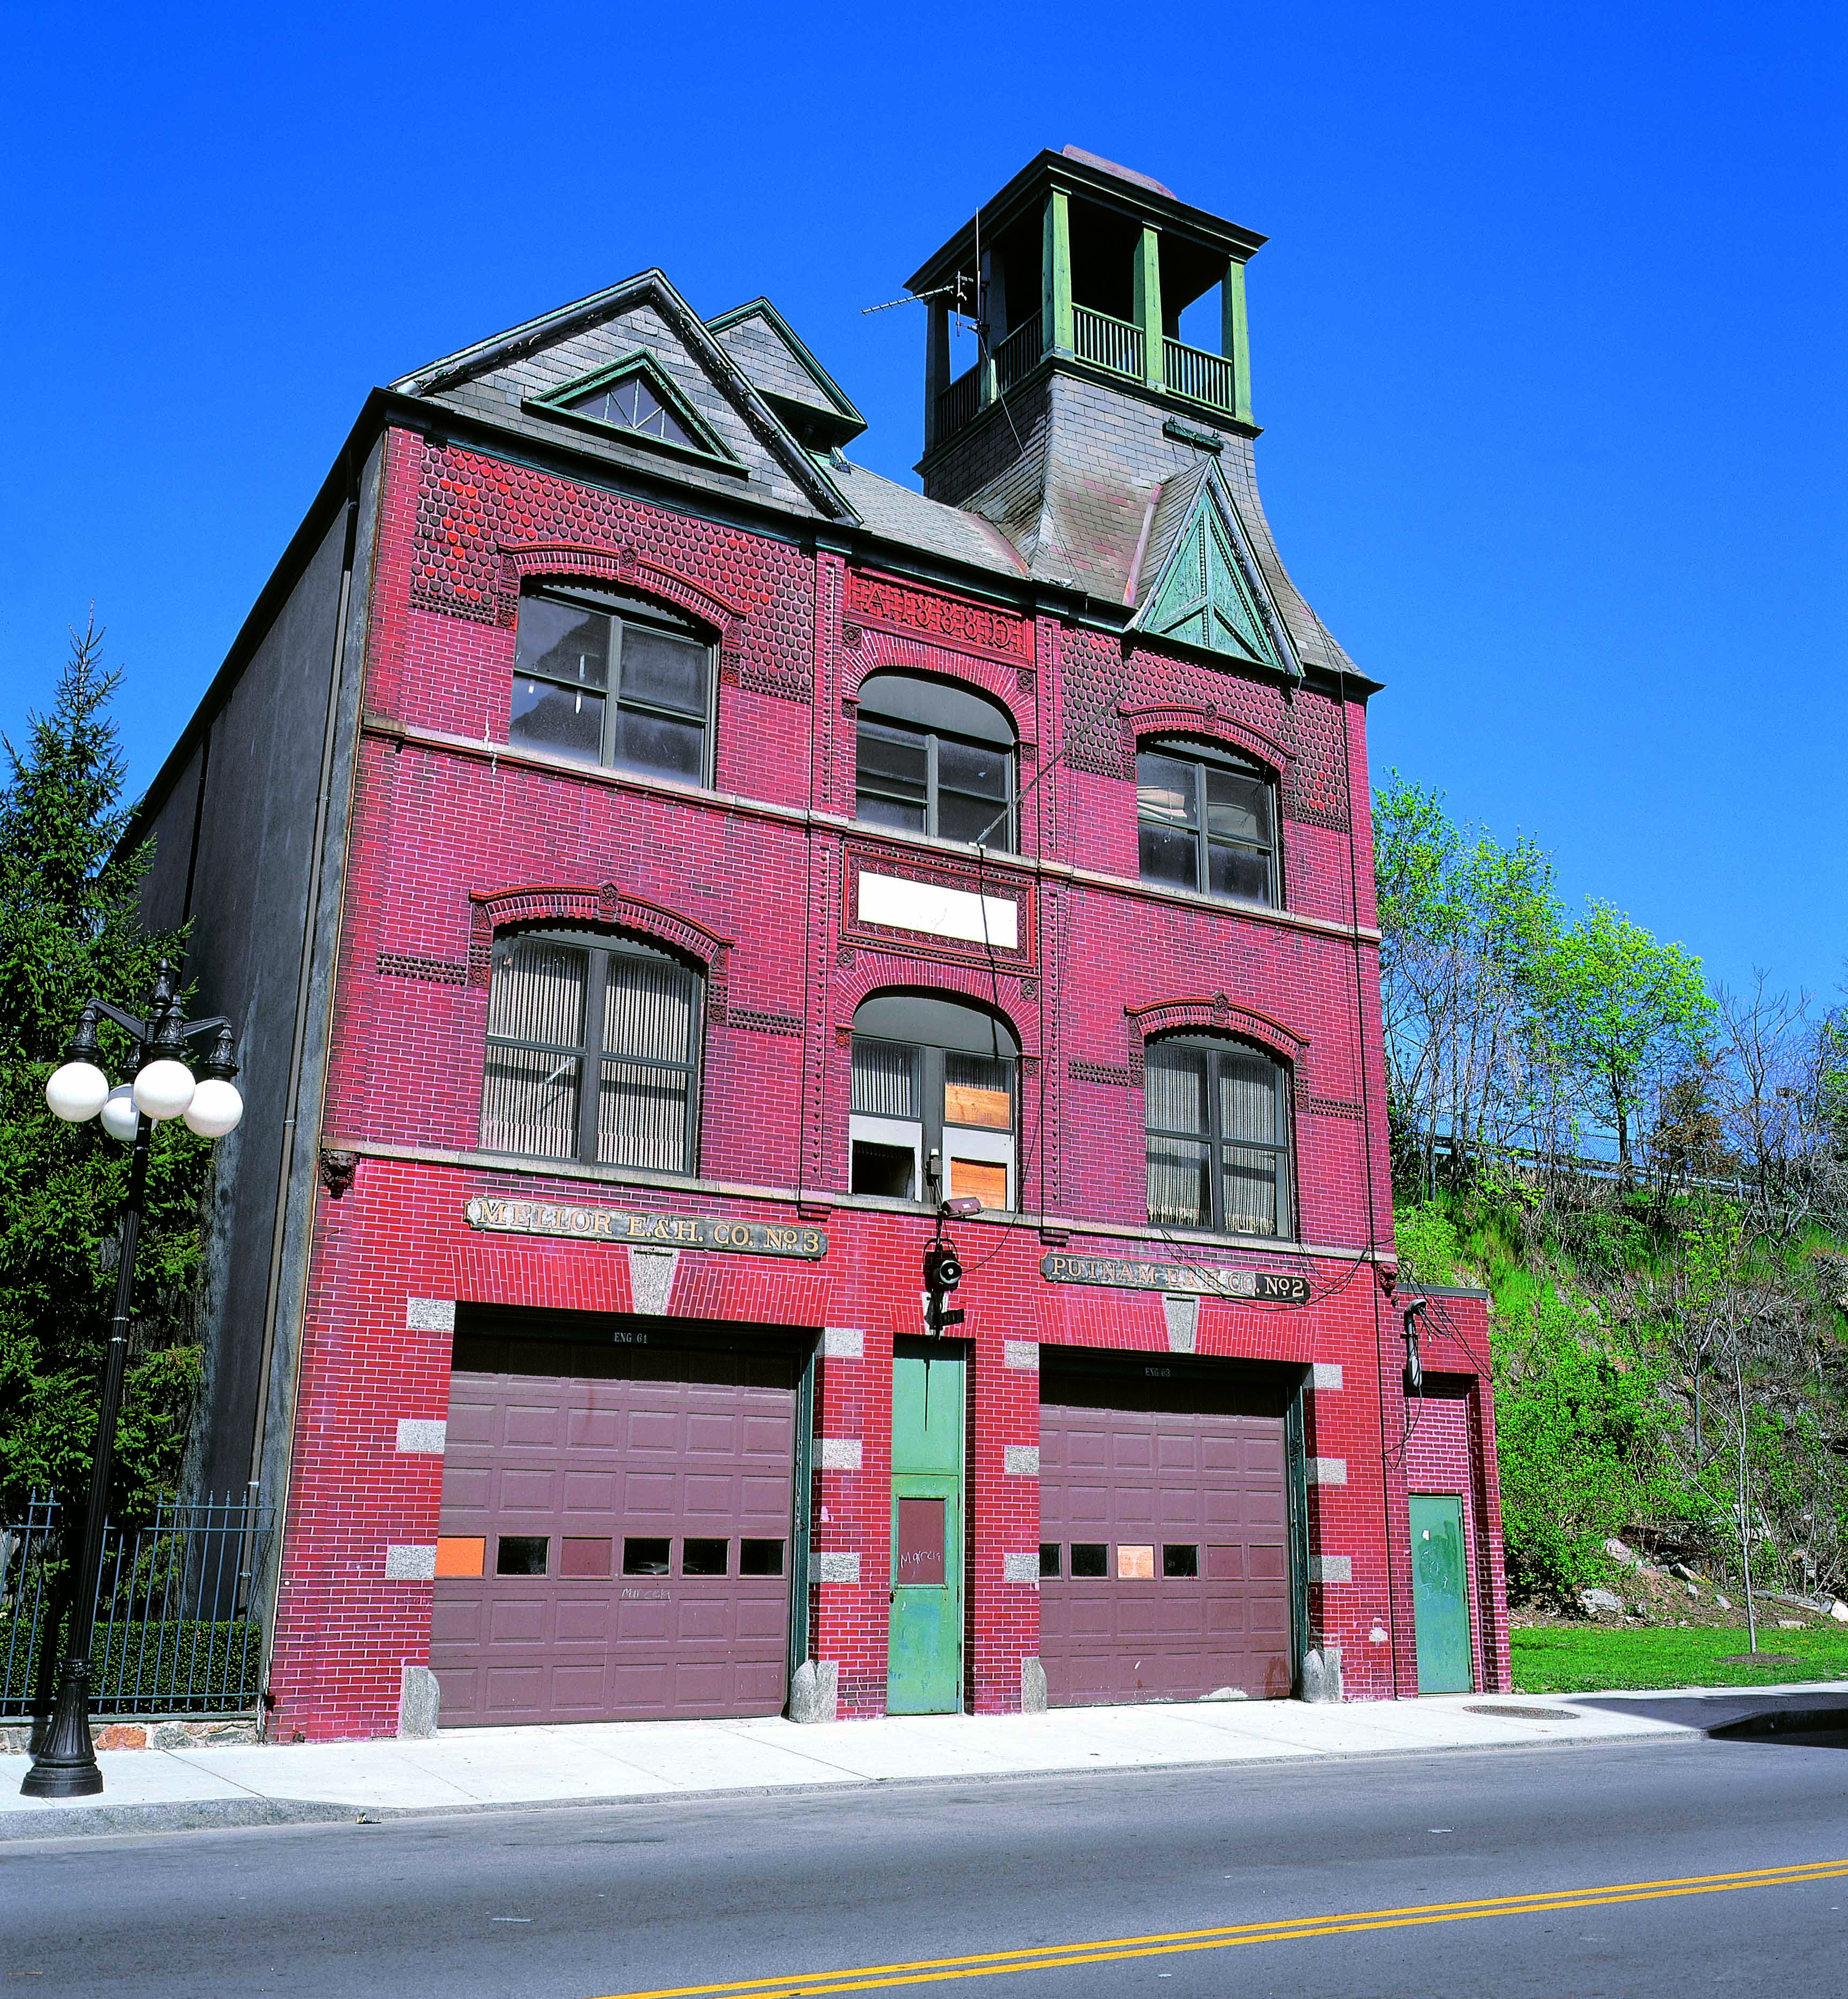 Putnam and Mellor Engine and Hose Company Firehouse, circa 2000.